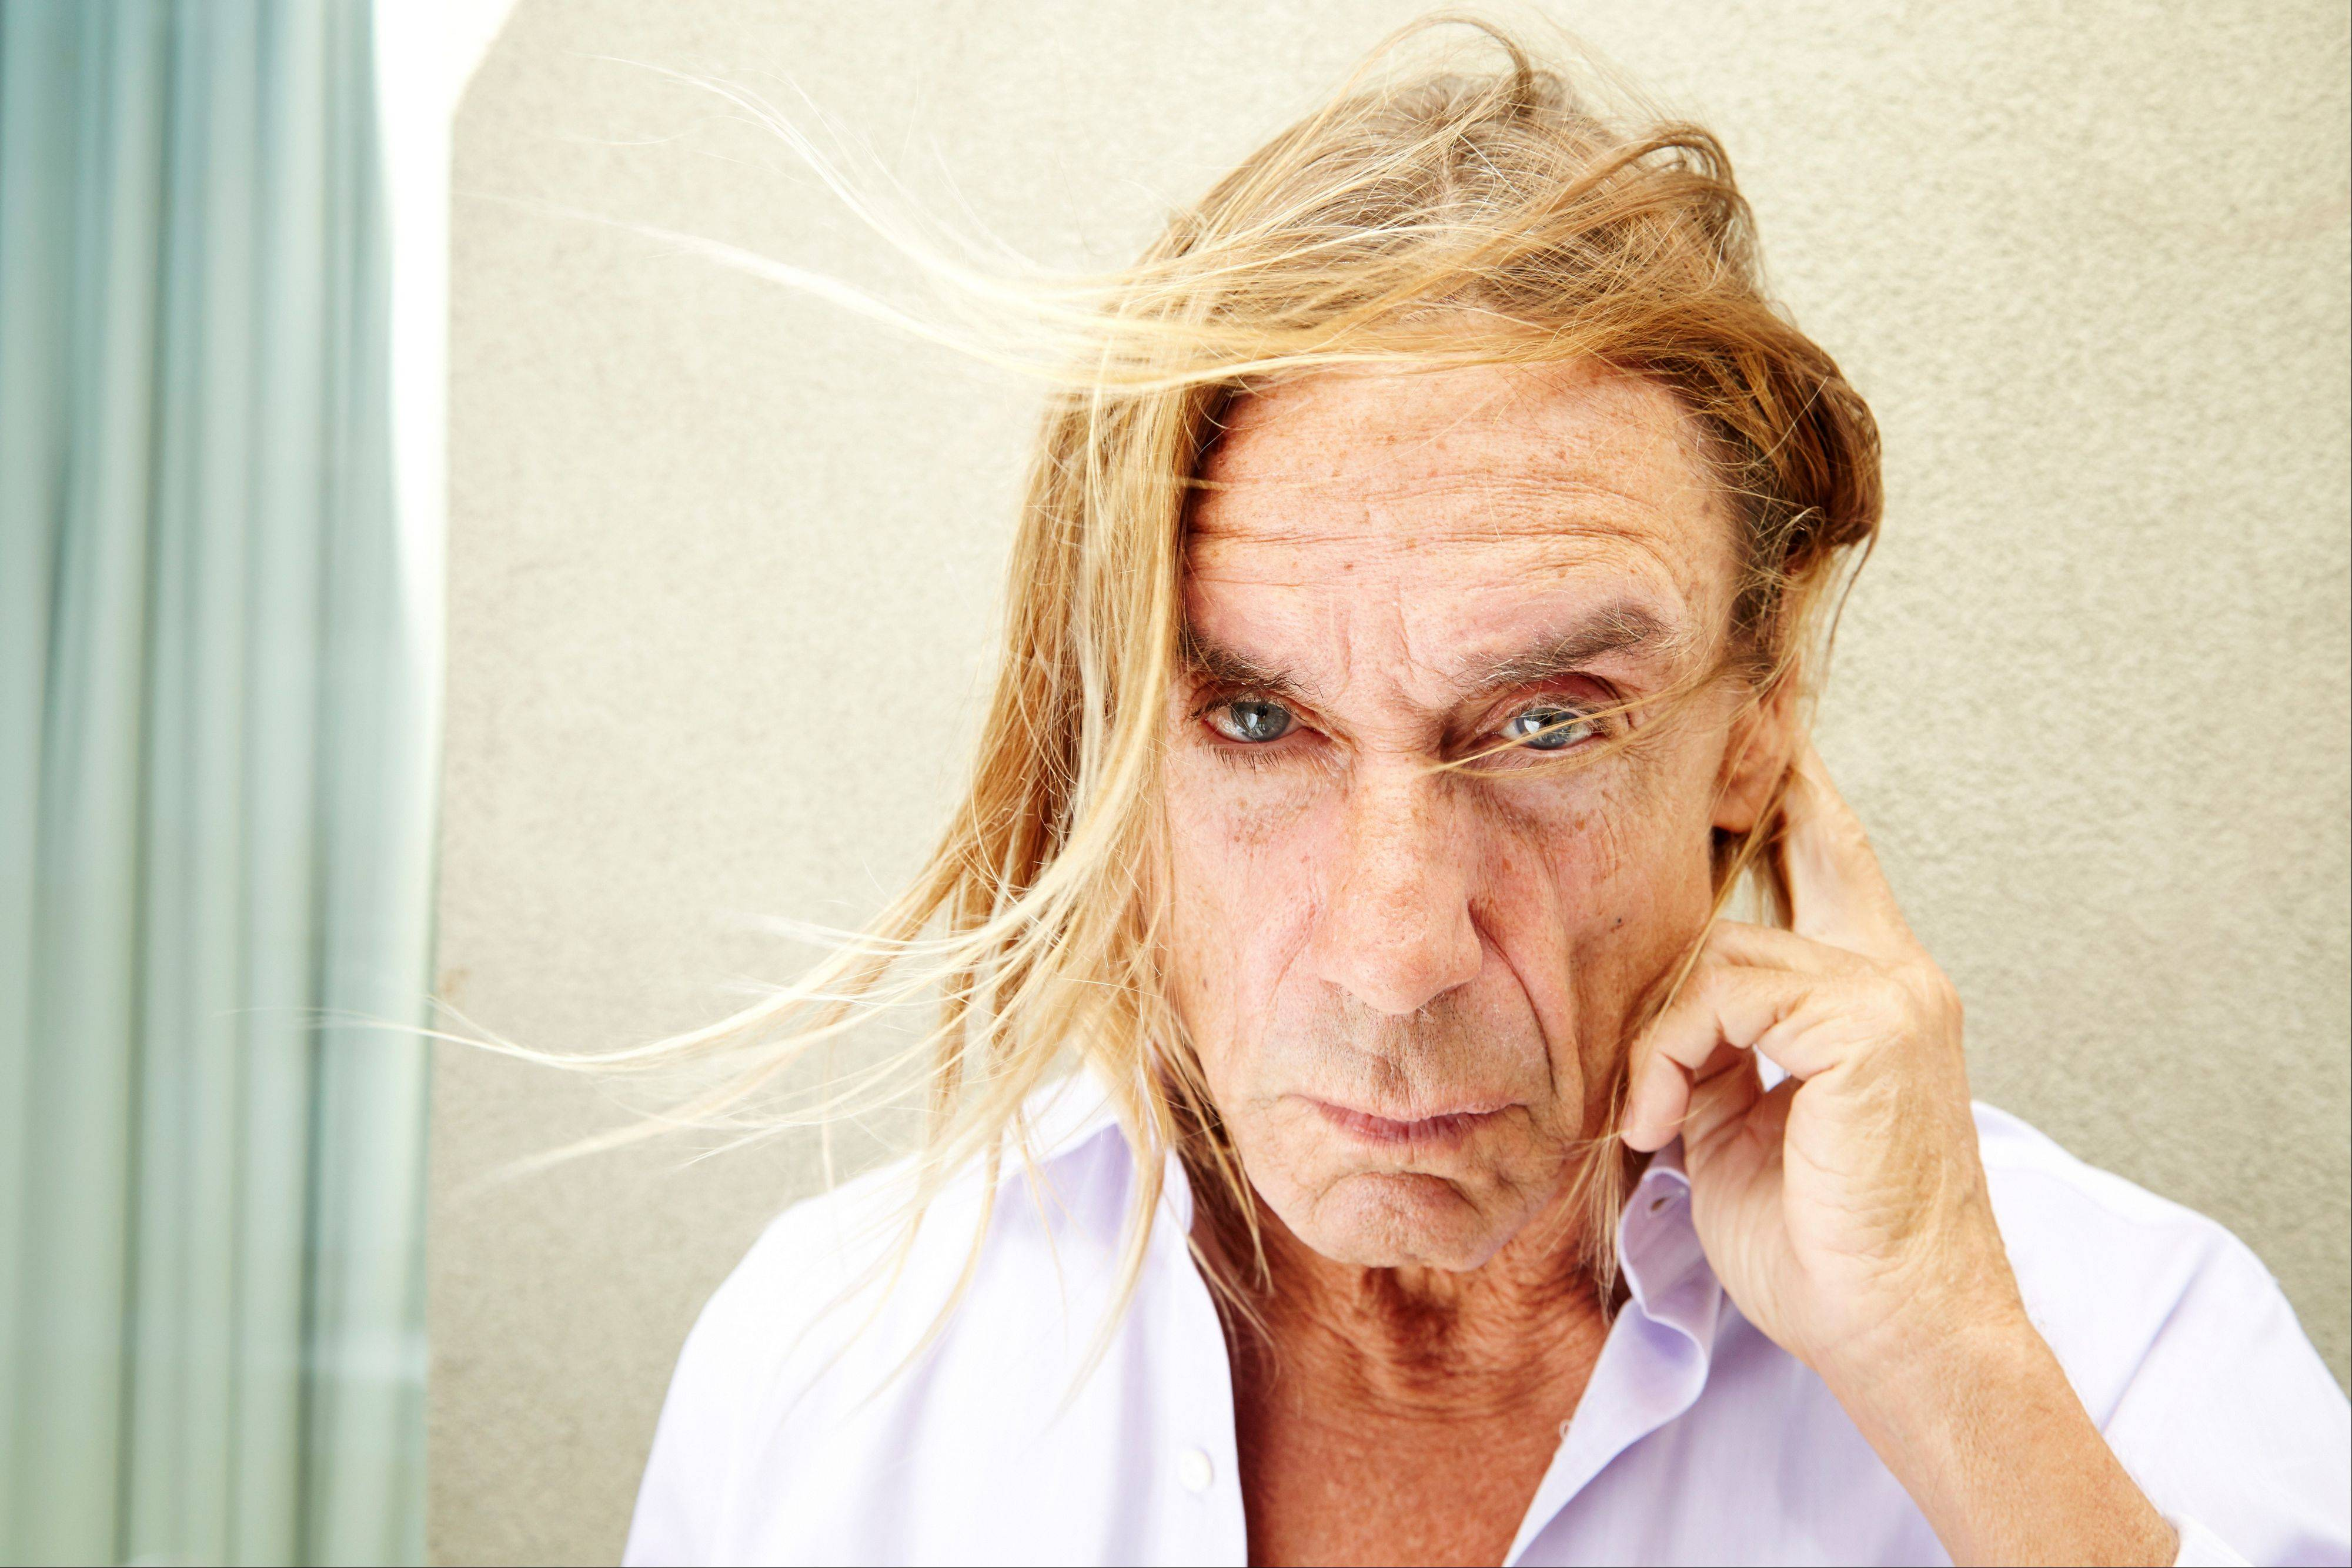 Born in relative obscurity at their start 40 years ago, Iggy & The Stooges, with Iggy Pop at the help, continues to get more and more popular with age.